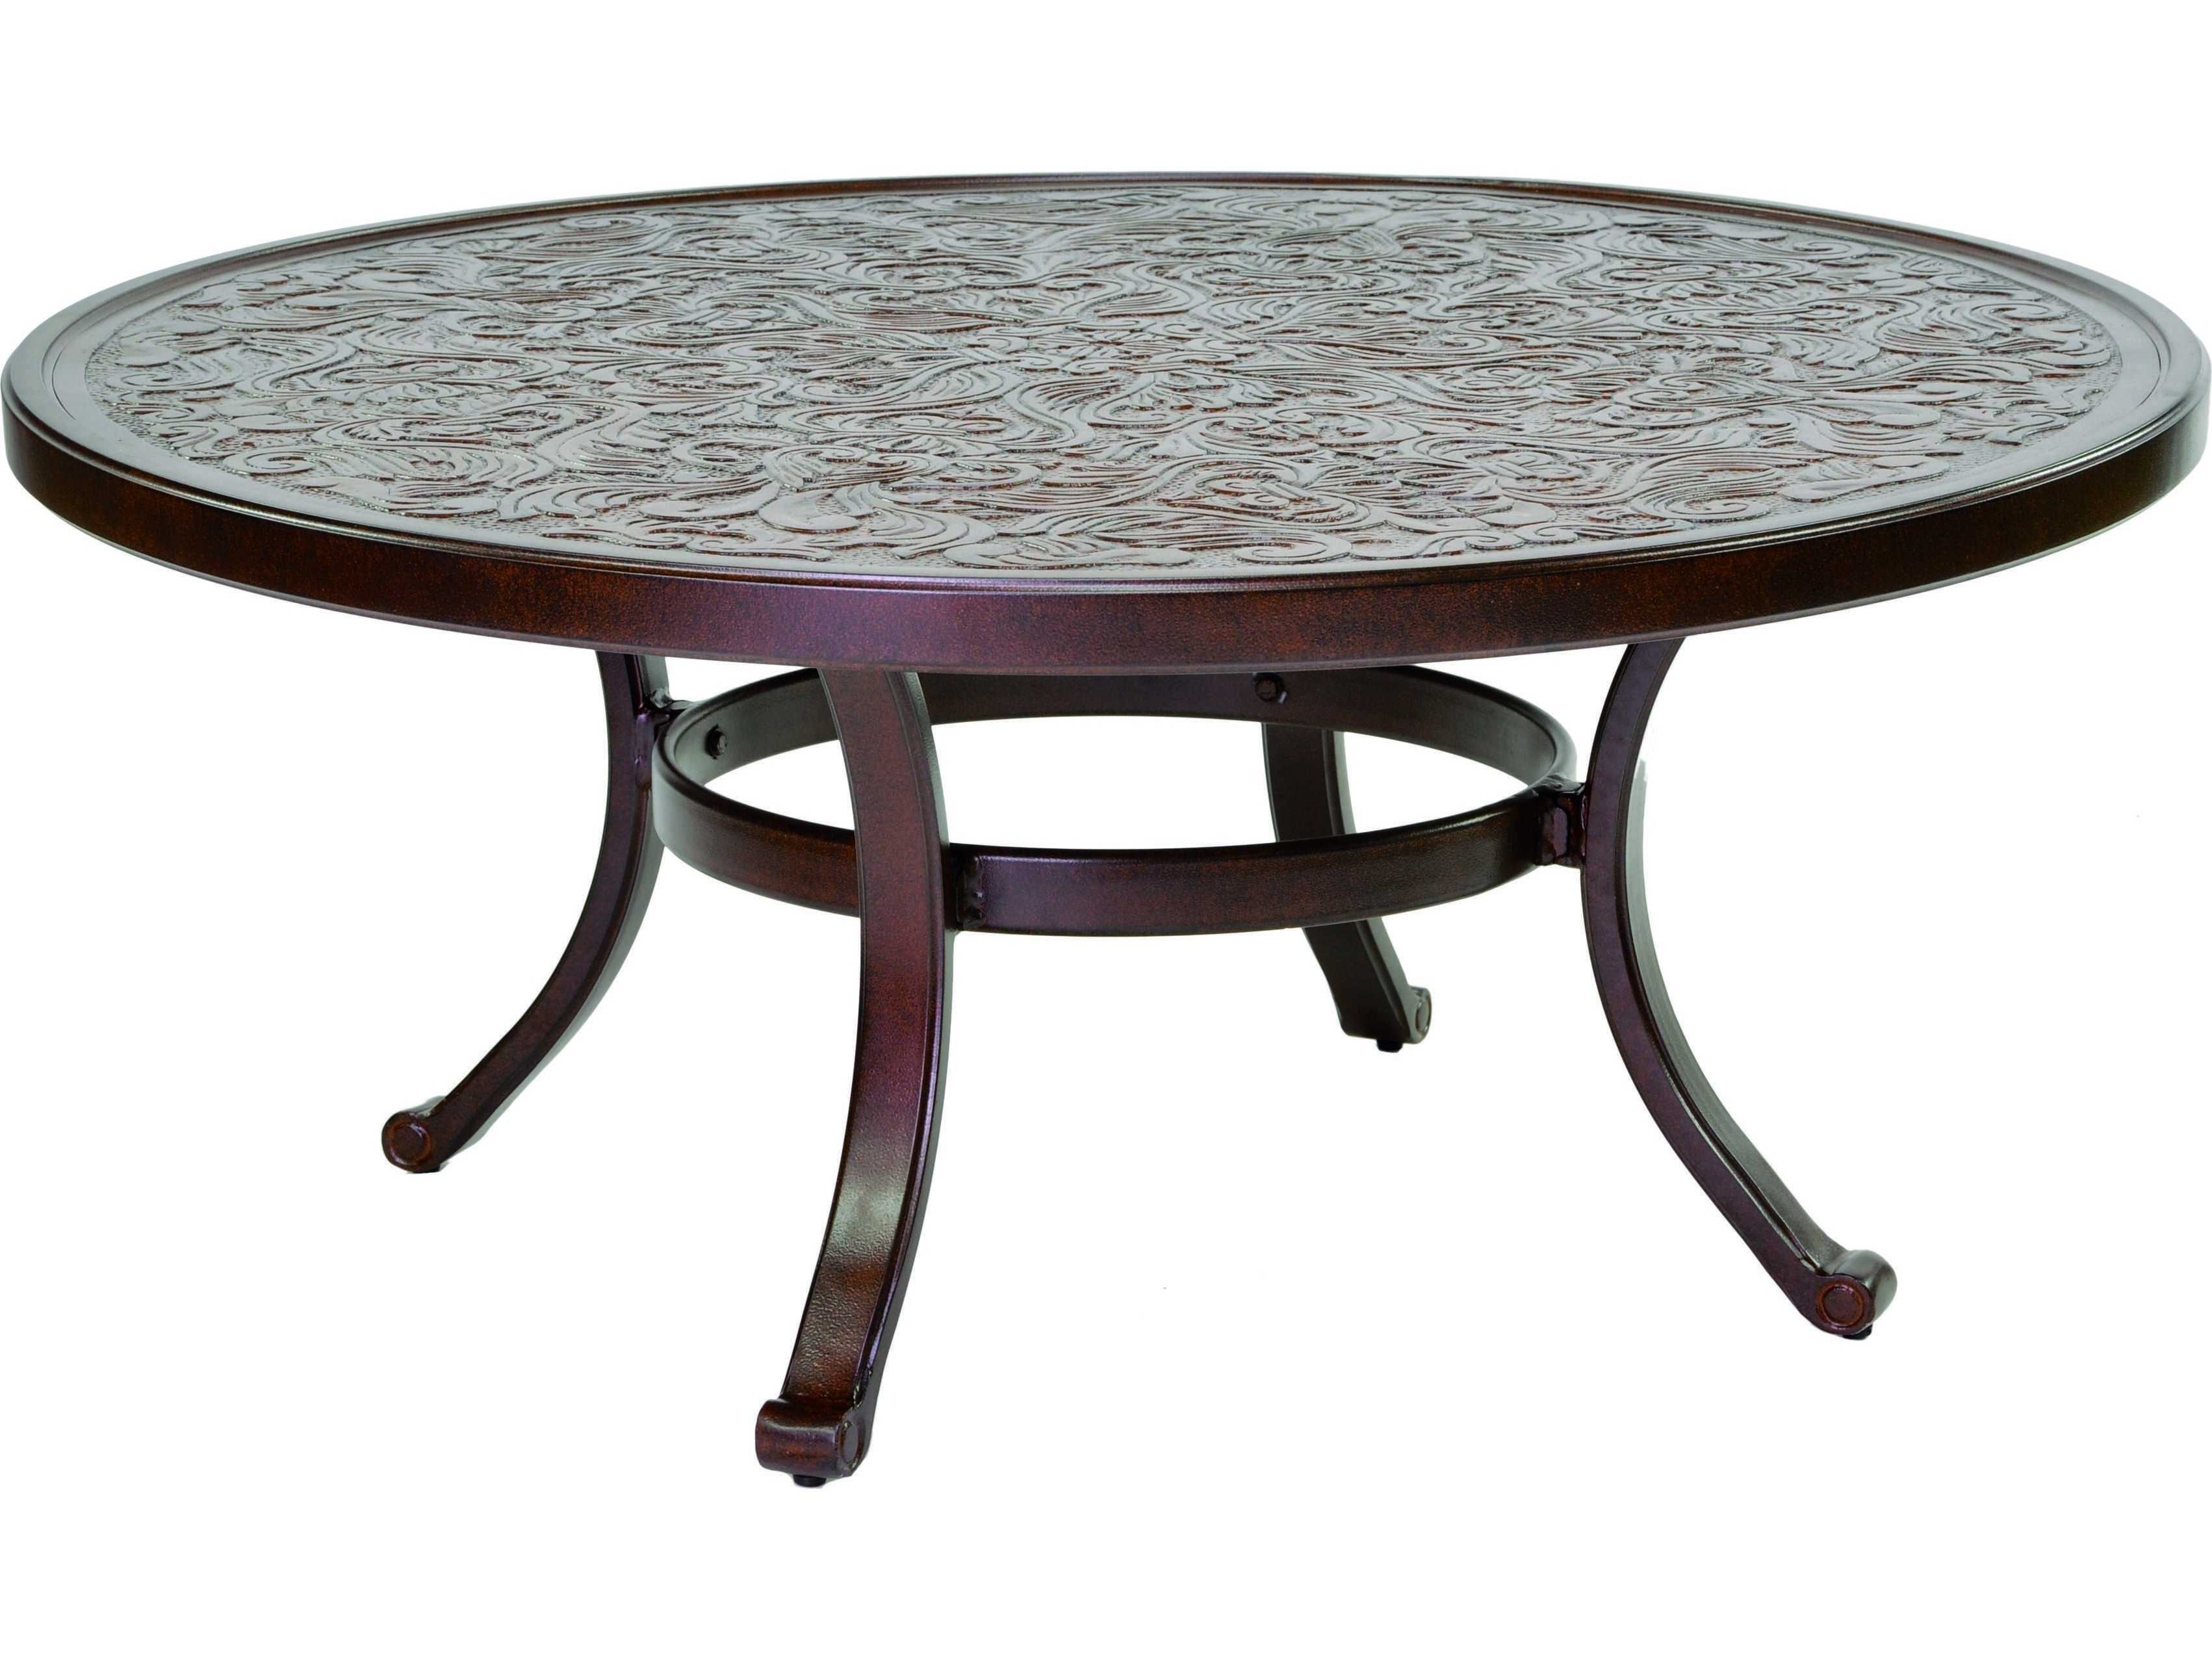 Castelle Vintage Cast Aluminum 42 44 Round Coffee Table Ready To Assemble Ncc42 Garden Coffee Table Round Wood Coffee Table Round Coffee Table Ikea [ 2554 x 3404 Pixel ]